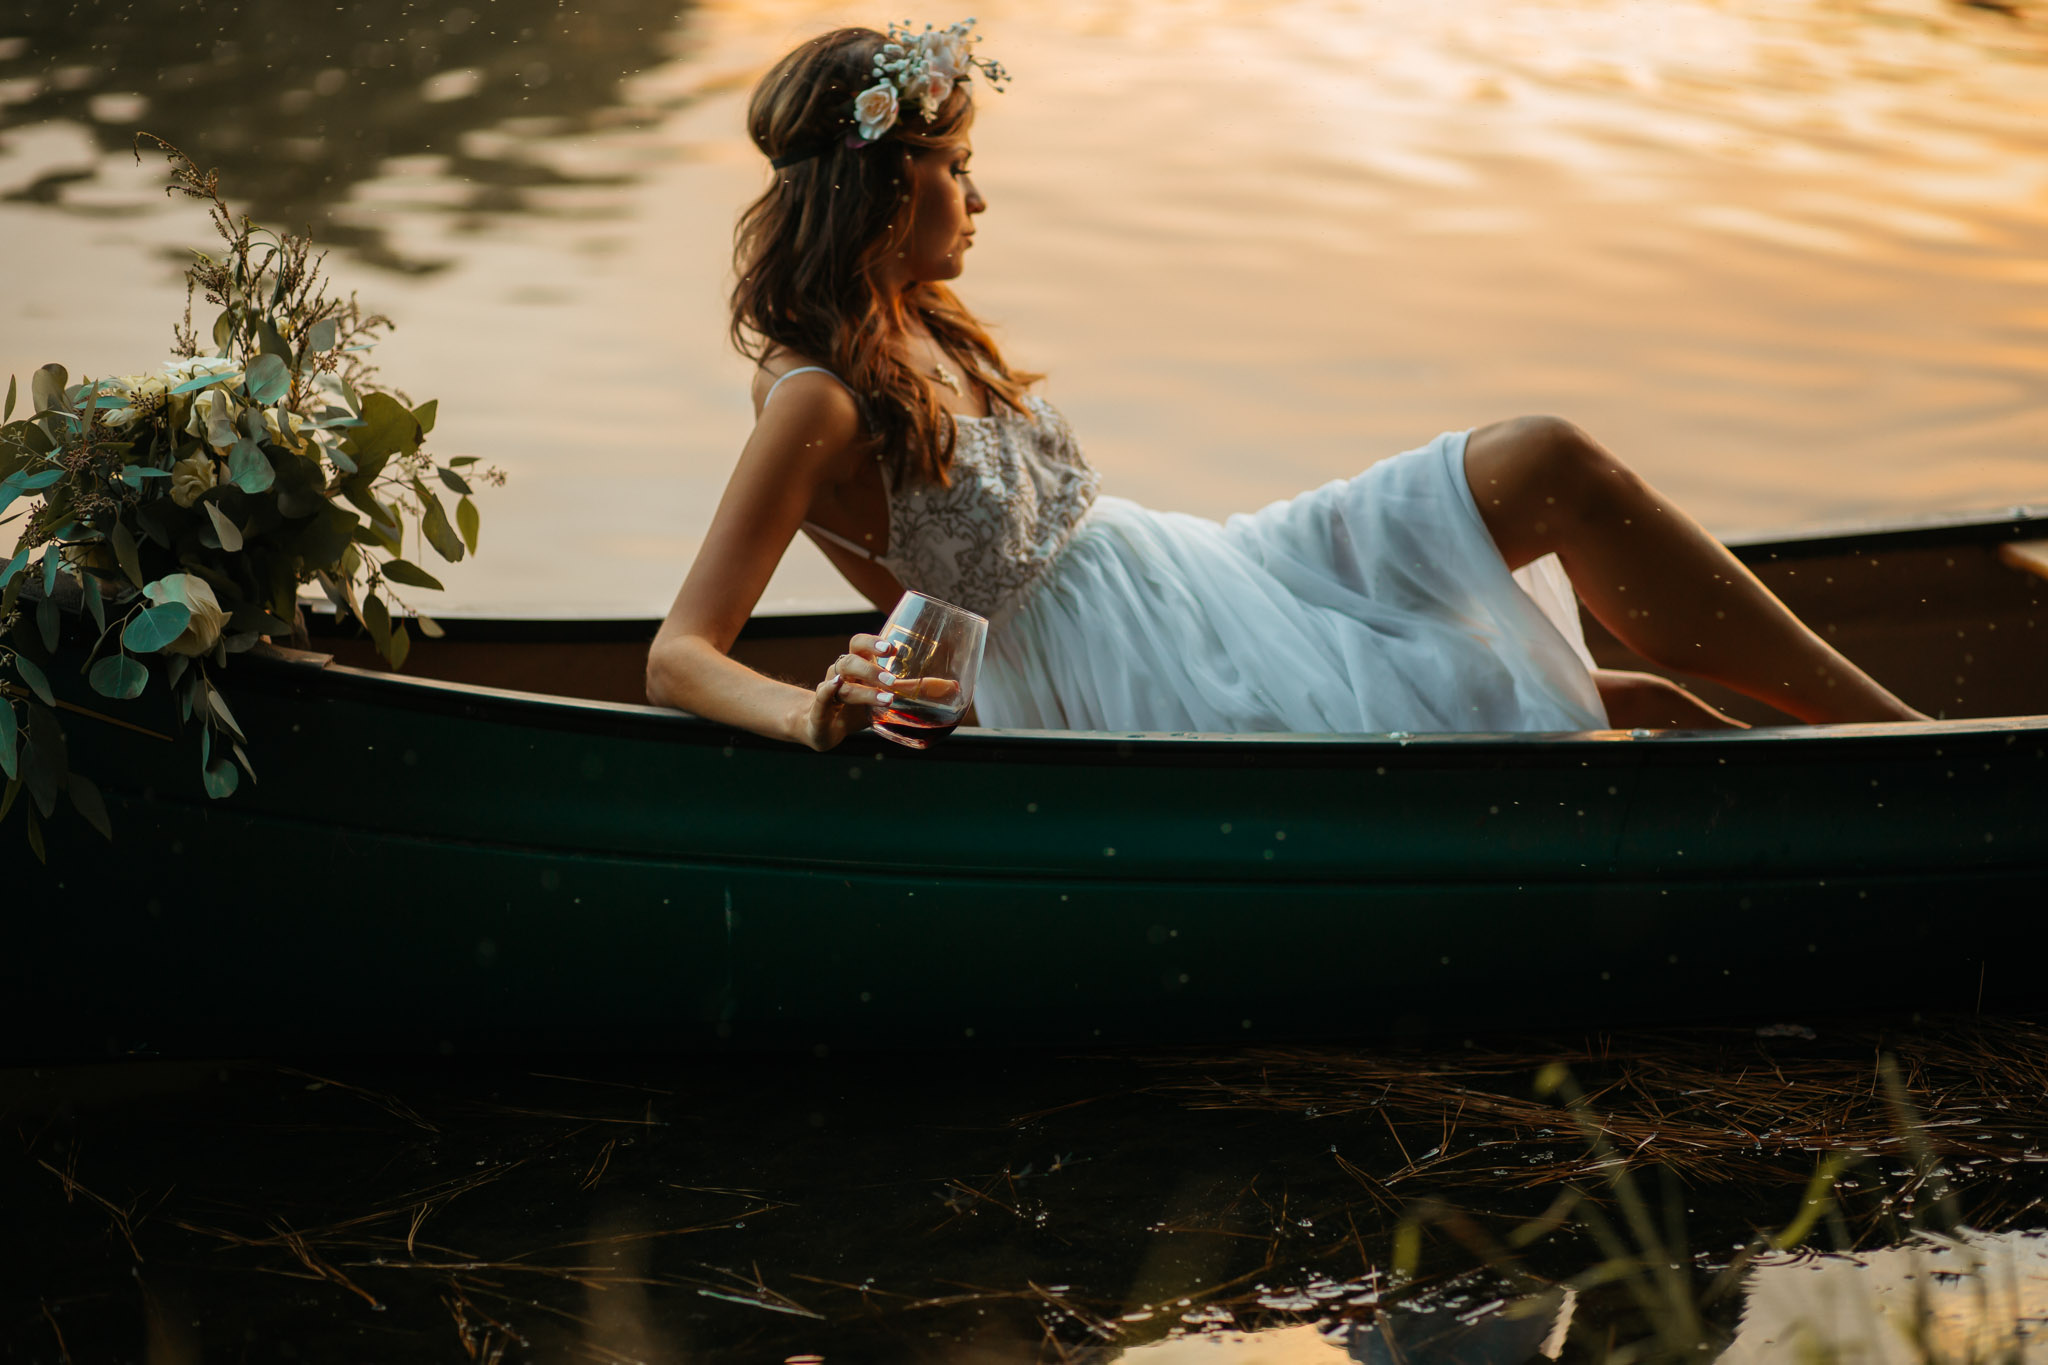 The Hatches | Memphis Tennessee Wedding and Elopement Photographer | 2016 Year in Review | the-hatches-memphis-tennessee-utah-colorado-arizona-washington-wedding-elopement-photographer-unique-dark-and-moody-creative-urban-journalistic-canoe-engagement-sunset